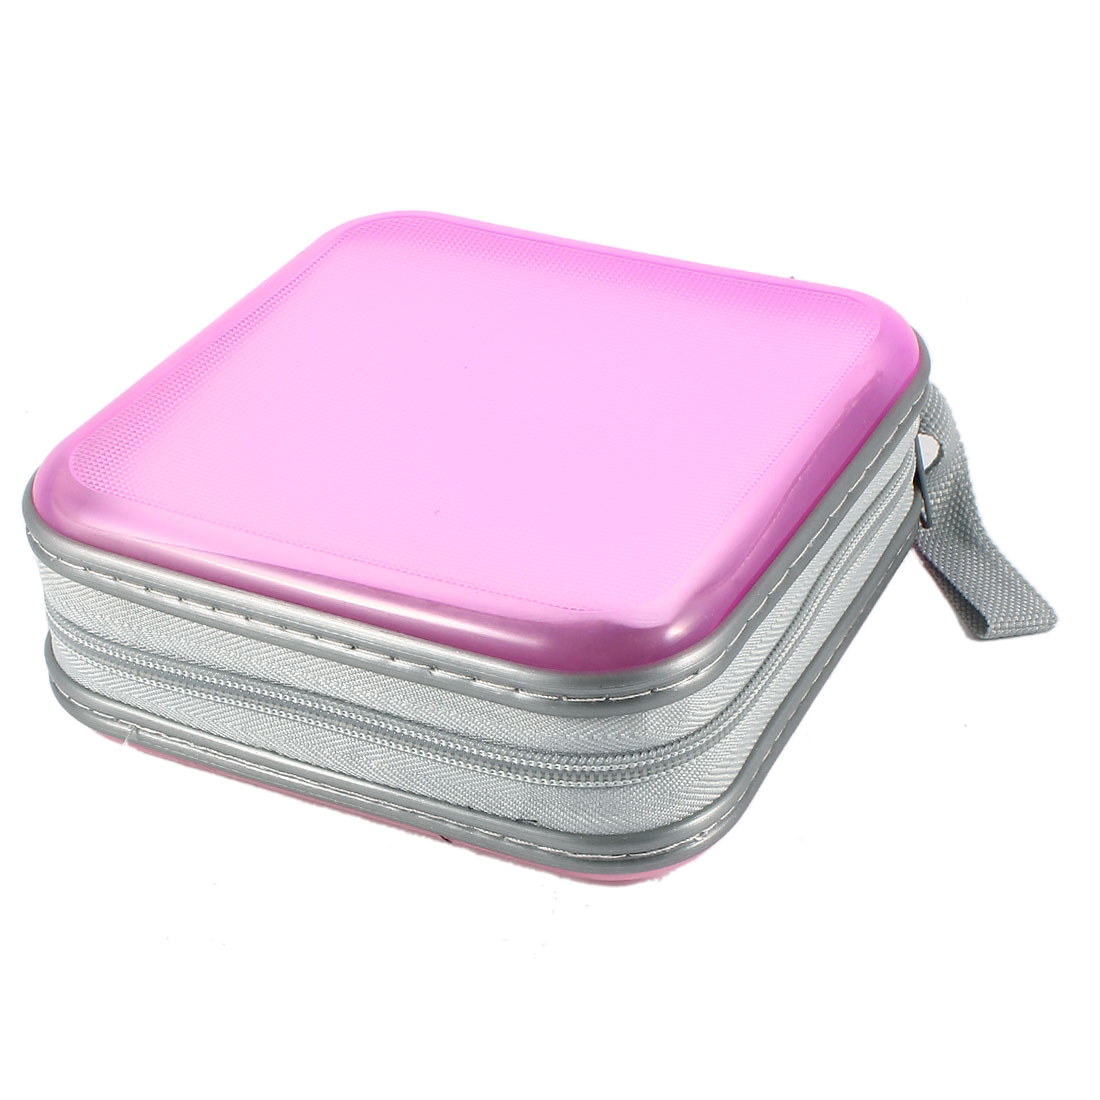 Square Shape 40 Disc CD DVD VCD Discs Sleeve Holder Storage Case Album Box Pink